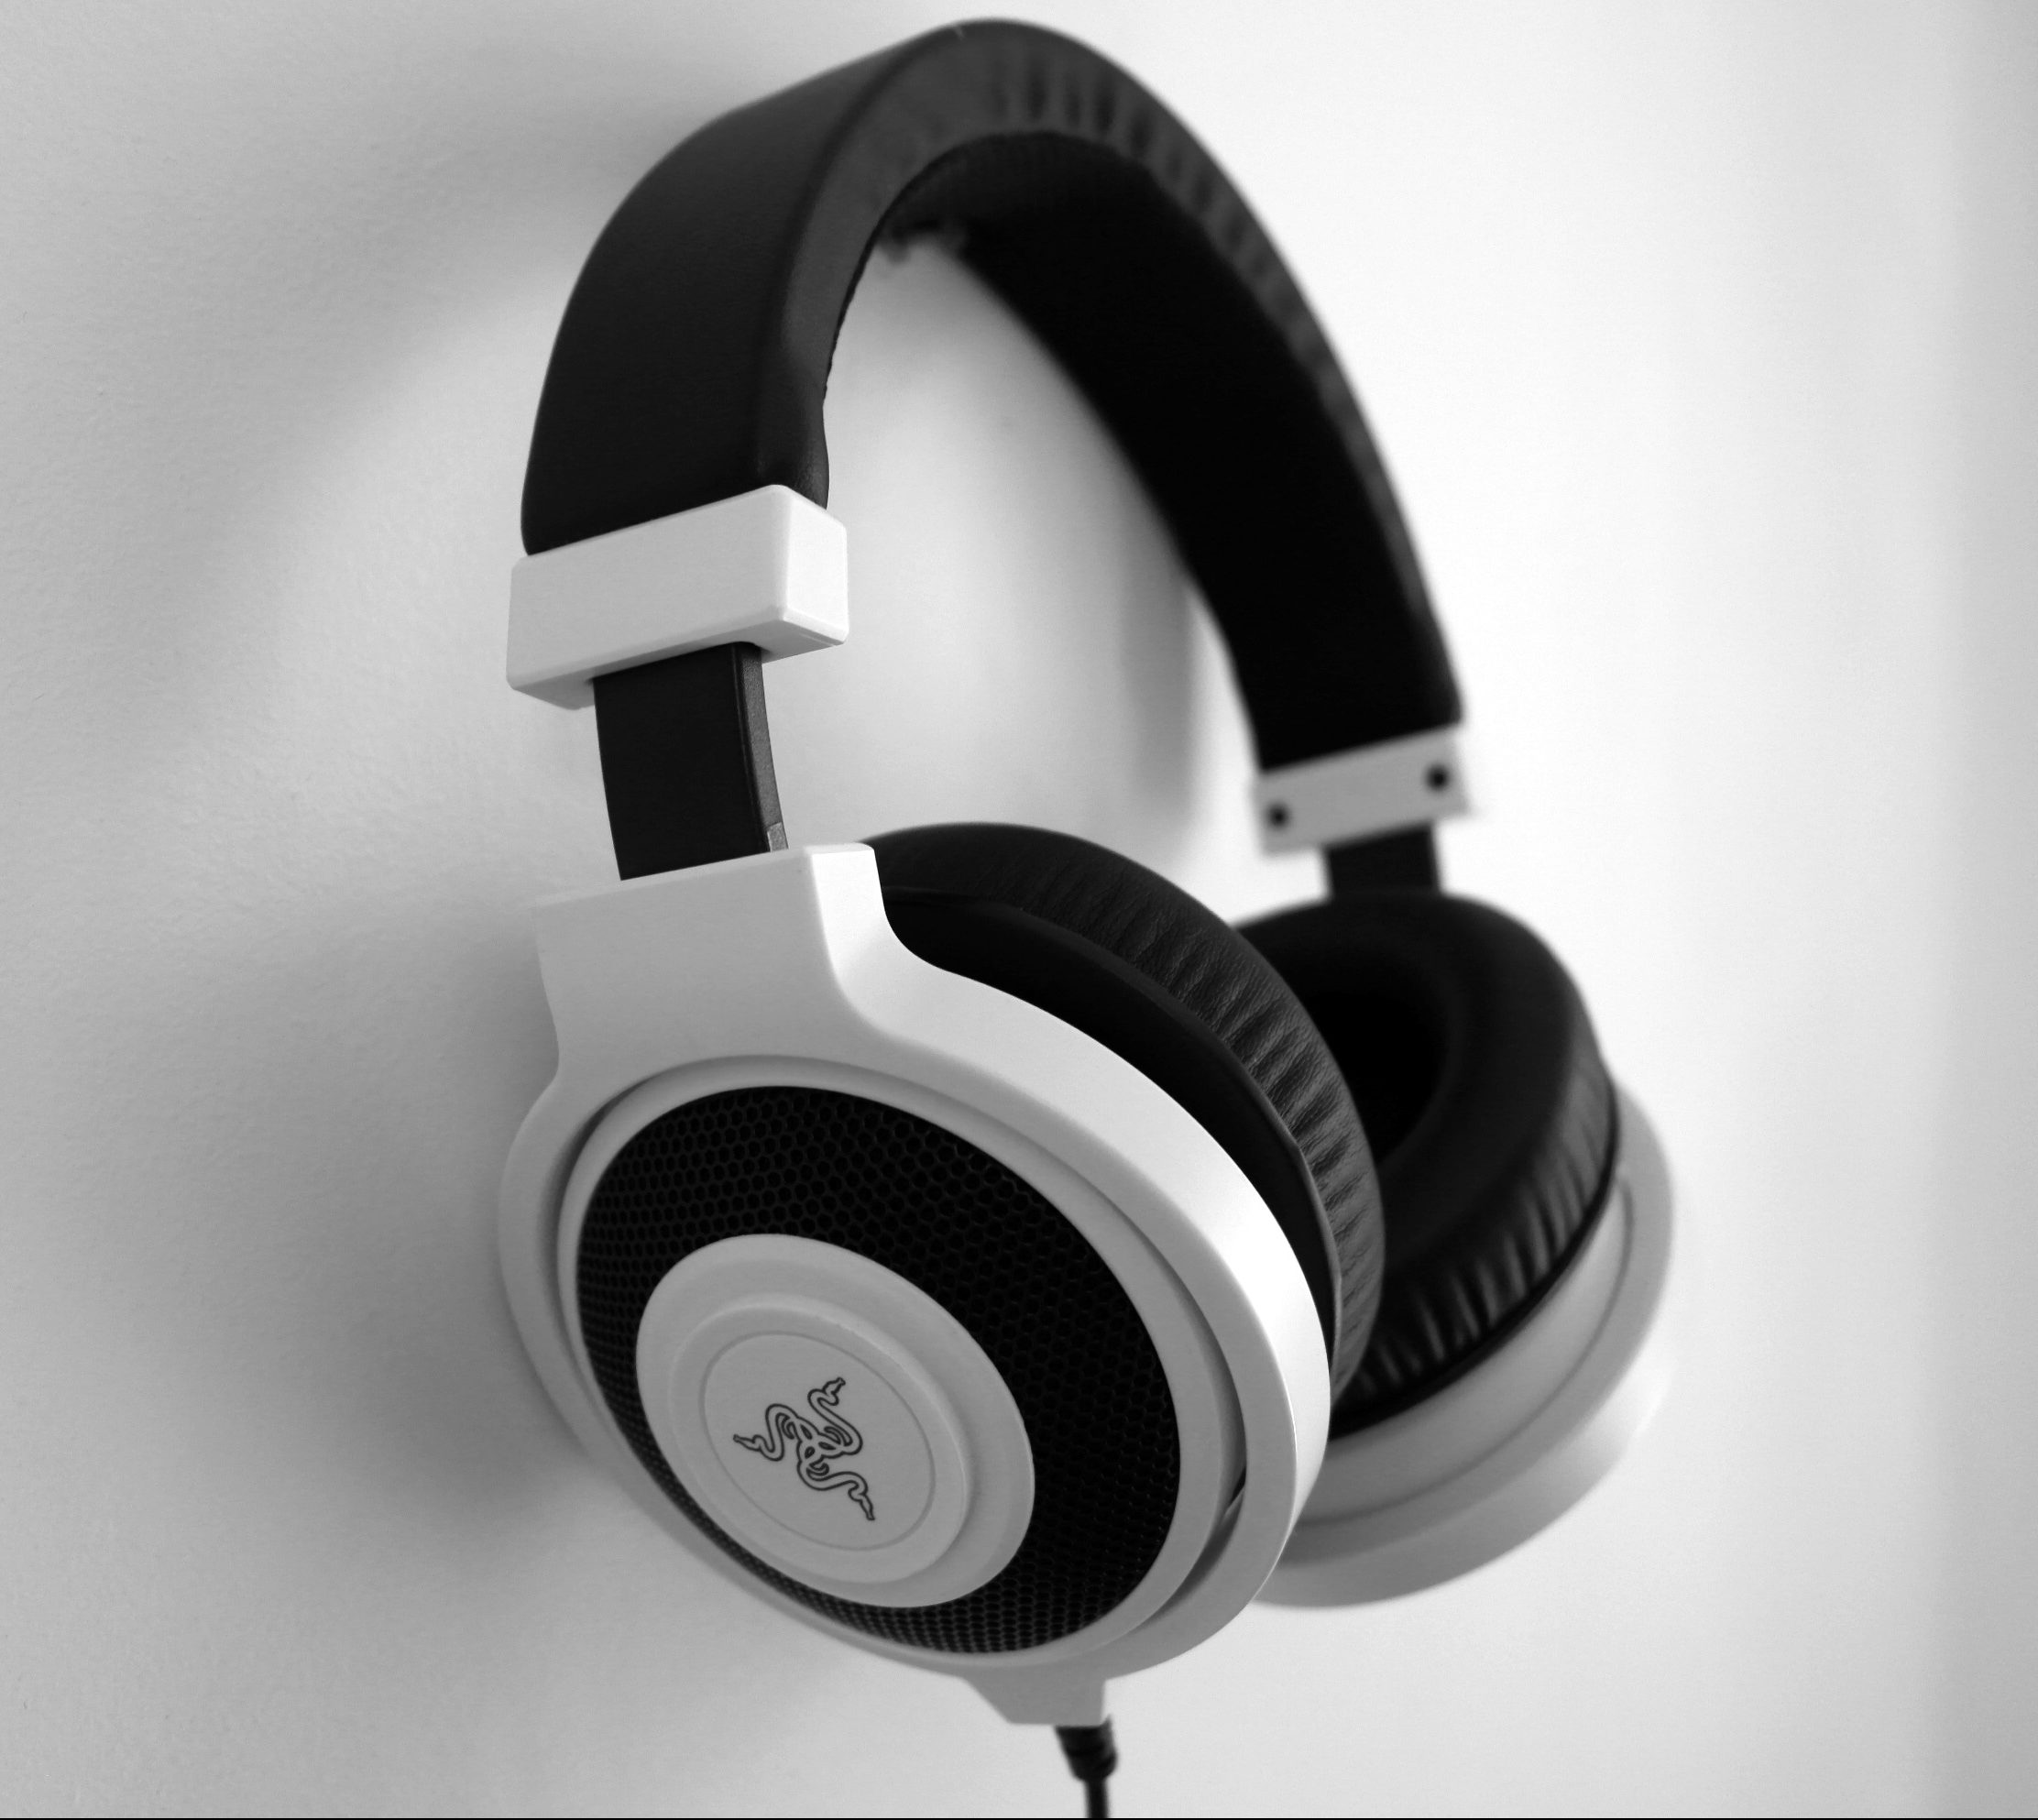 10 Best Headsets for CS:GO That Work